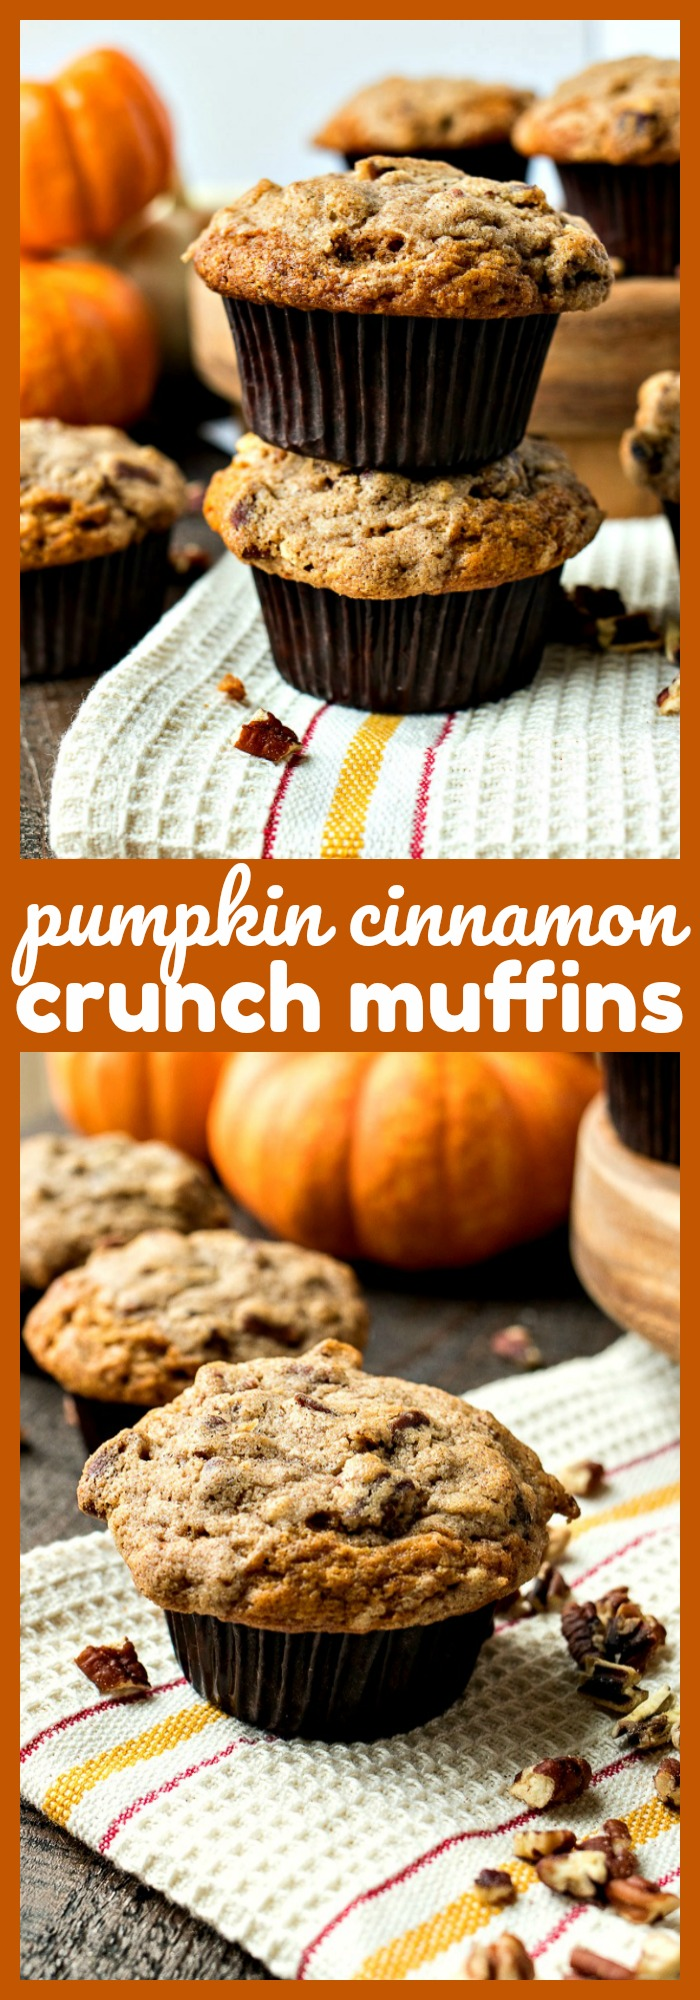 Pumpkin Cinnamon Crunch Muffins photo collage